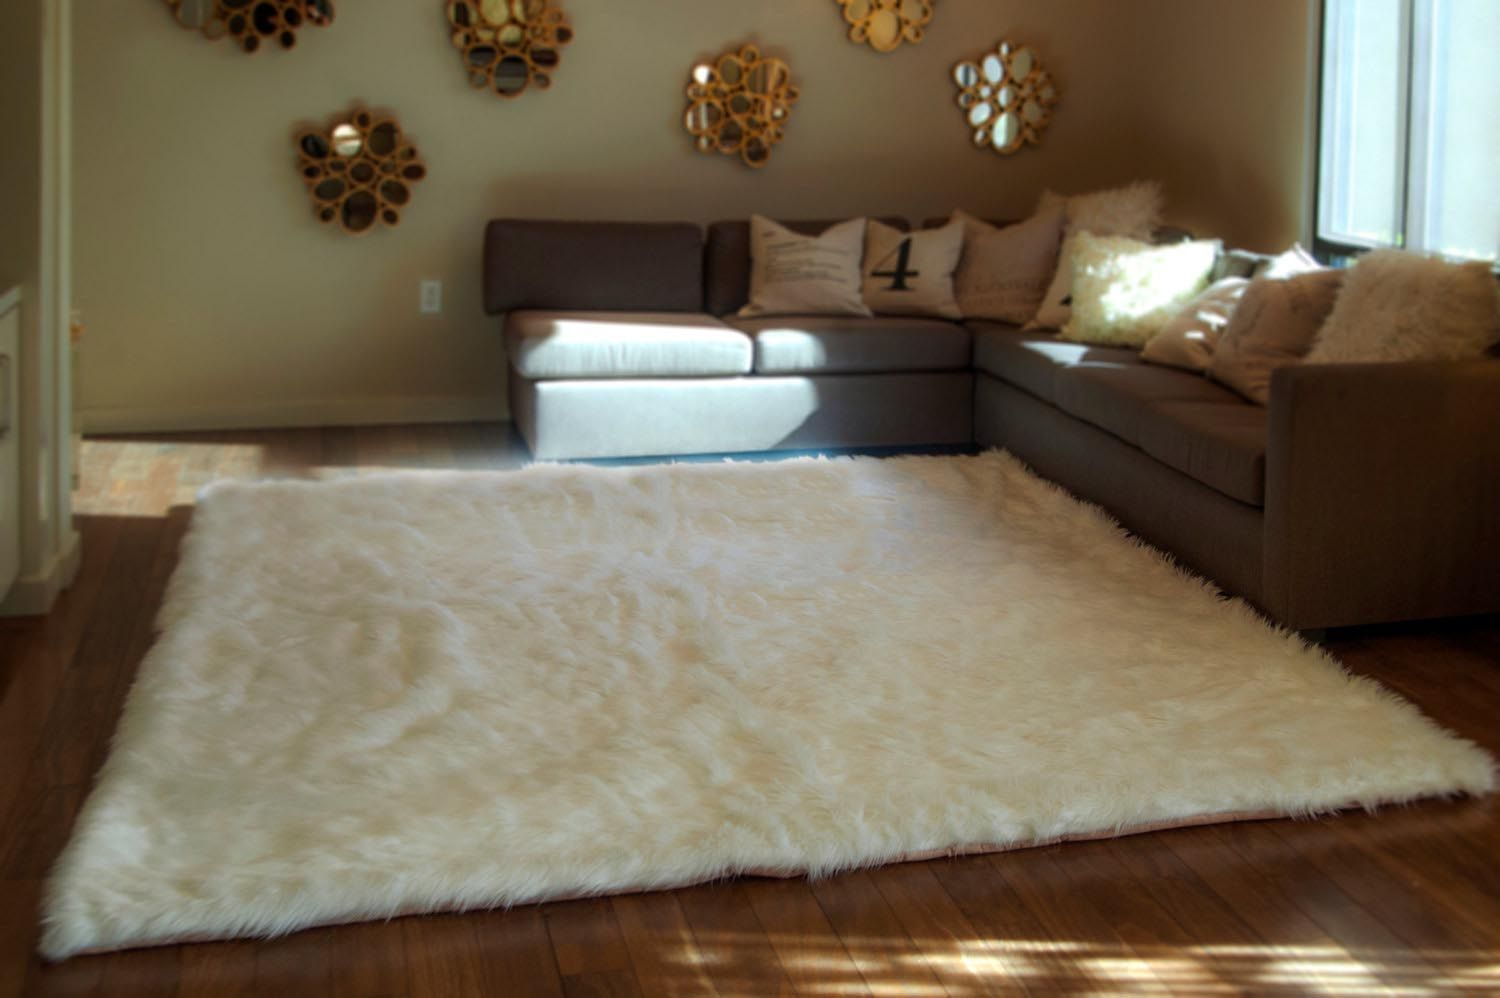 White Fluffy Area Rug Fur Rug Living Room Faux Fur Area Rug Area Room Rugs